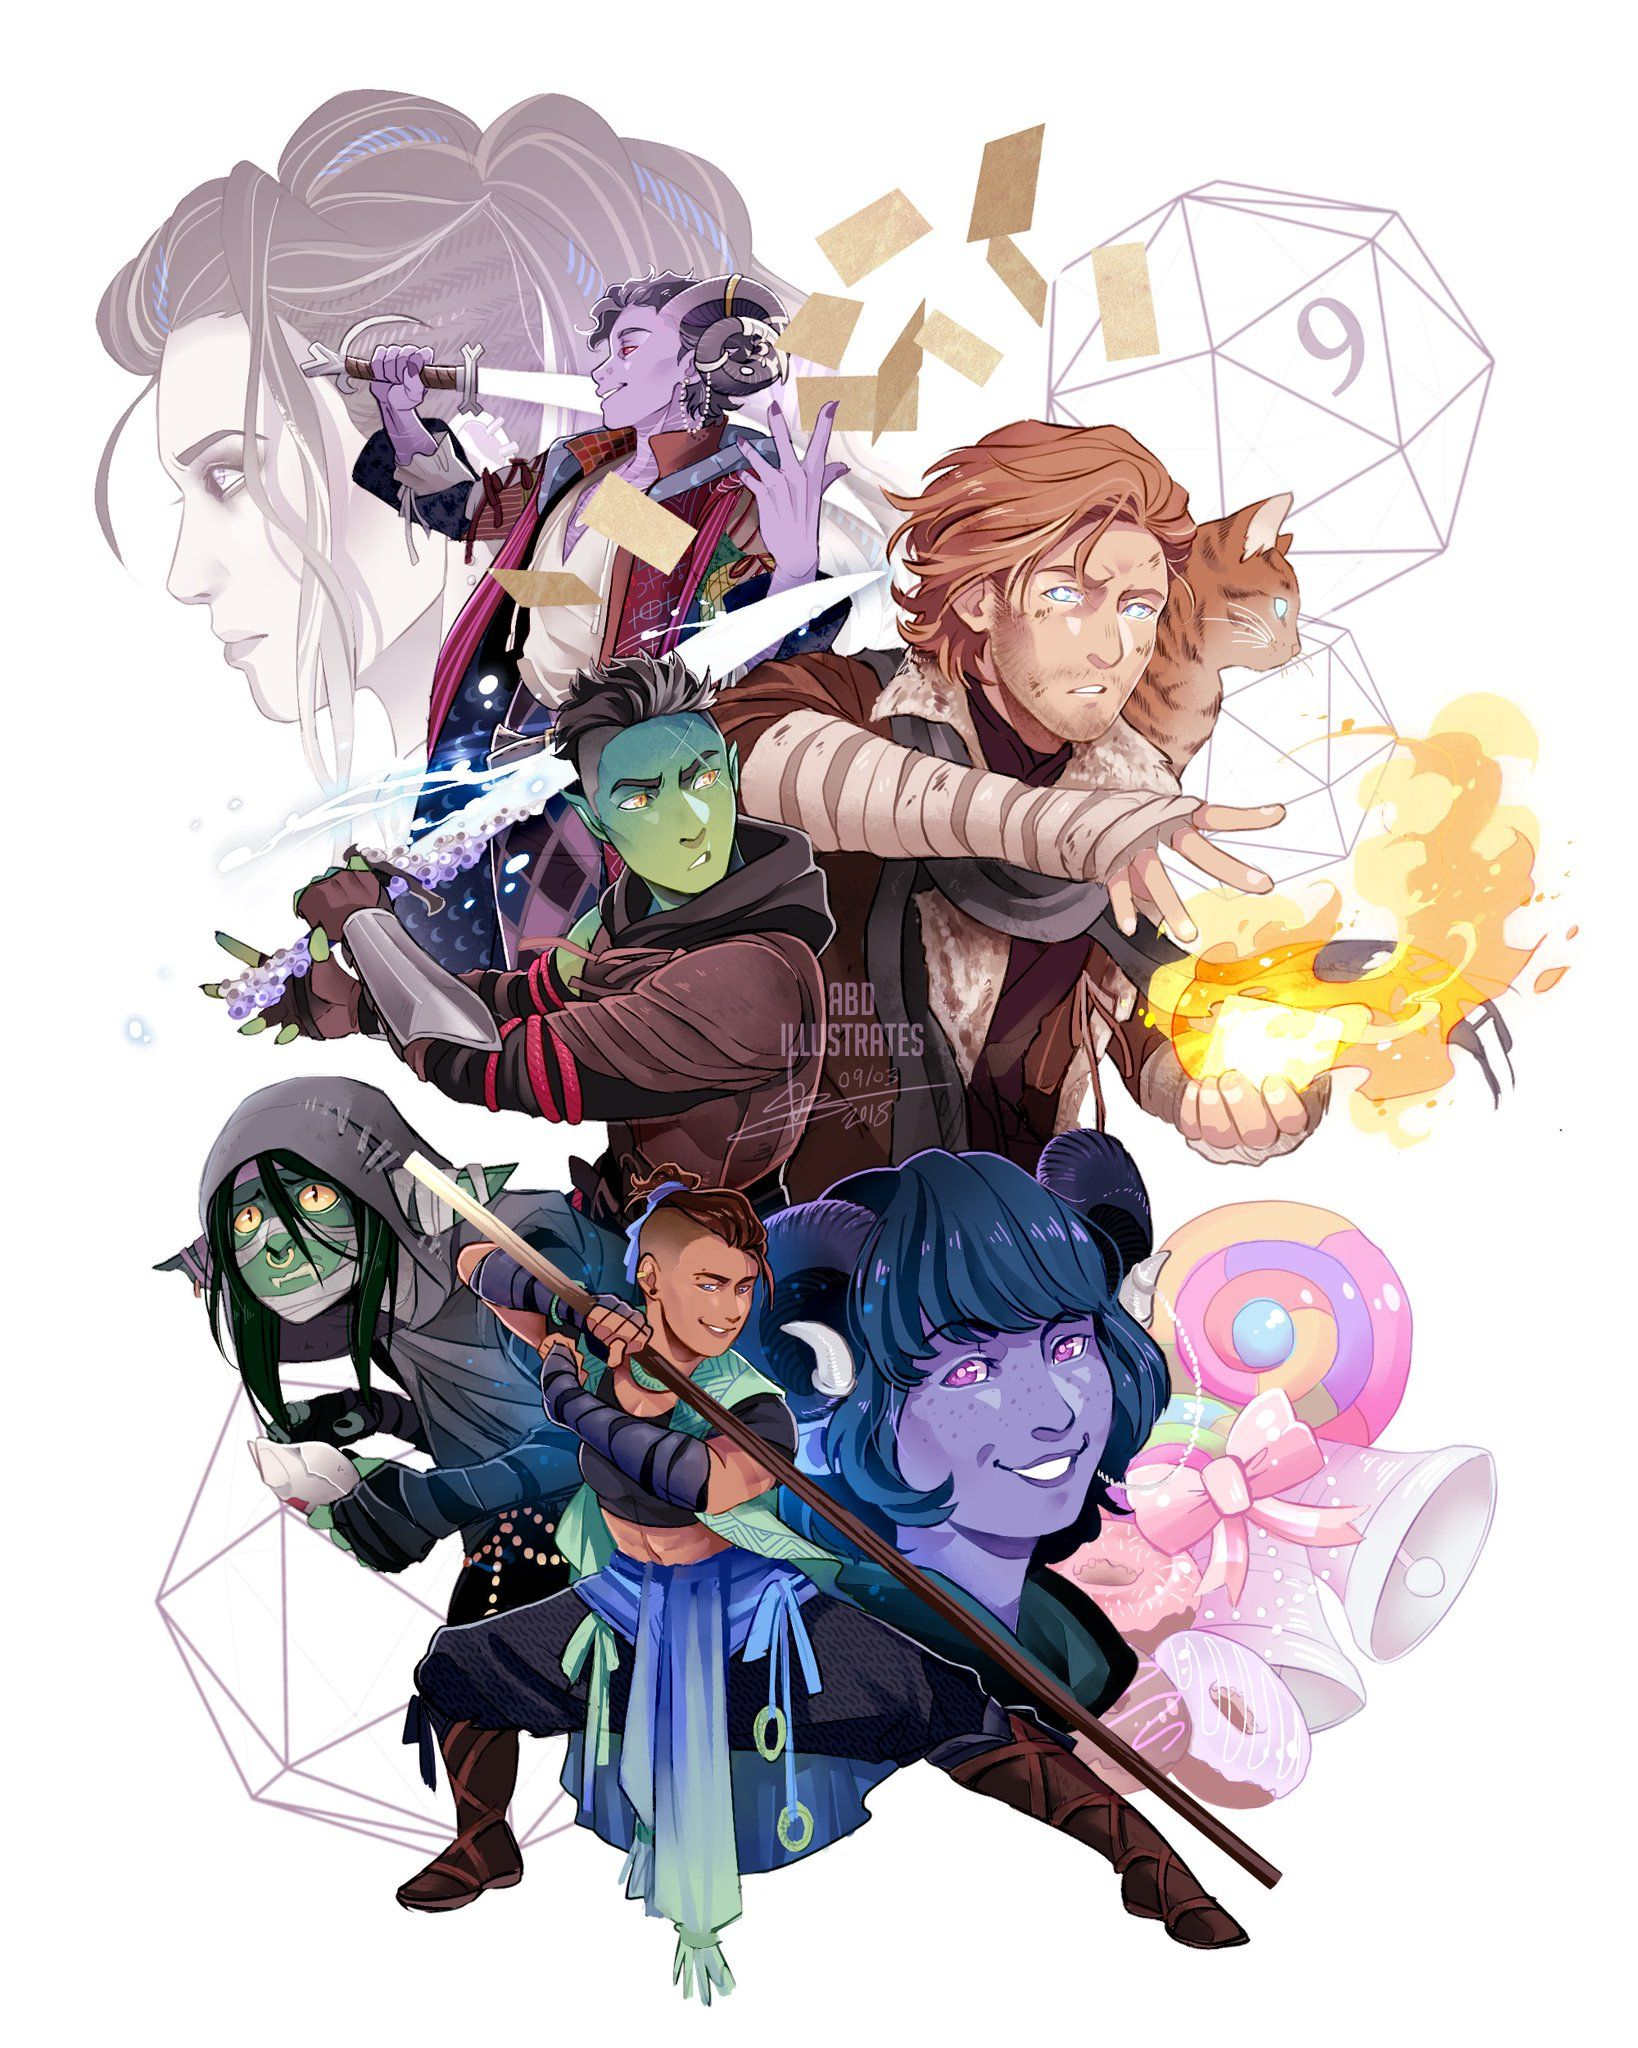 Gallery Critical Role Fan Art Undercurrents Geek And Sundry Critical Role Characters Critical Role Fan Art Critical Role Critical role is geek & sundry's live dungeons & dragons show, featuring dungeon master matthew mercer and his troupe of fellow voice actors. gallery critical role fan art